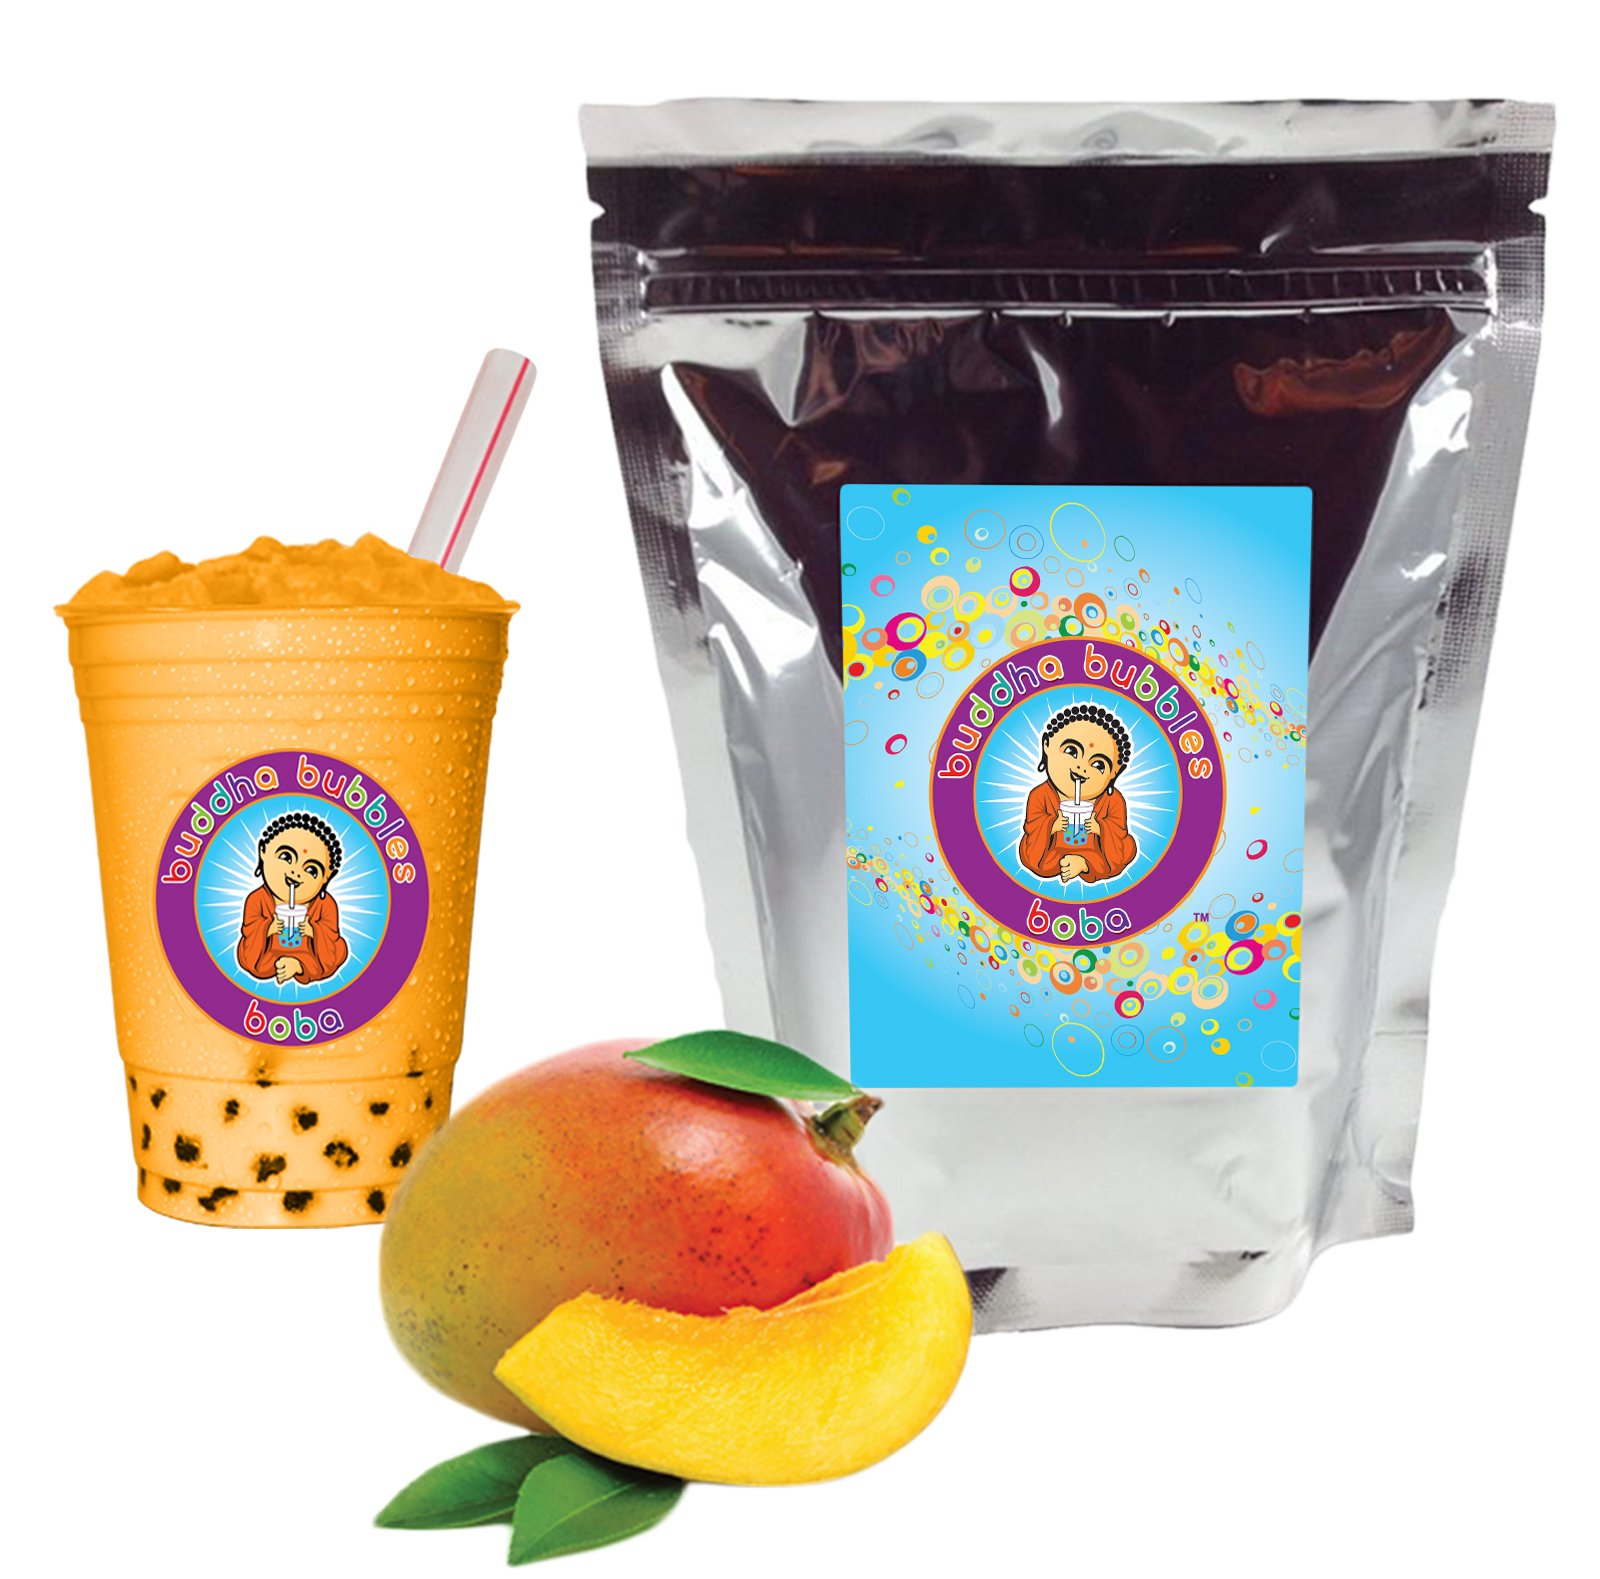 NEW TASTE ! Mango Boba / Bubble Tea Drink Mix Powder By Buddha Bubbles Boba 1 Kilo (2.2 Pounds) | (1000 Grams) by Buddha Bubbles Boba LLC